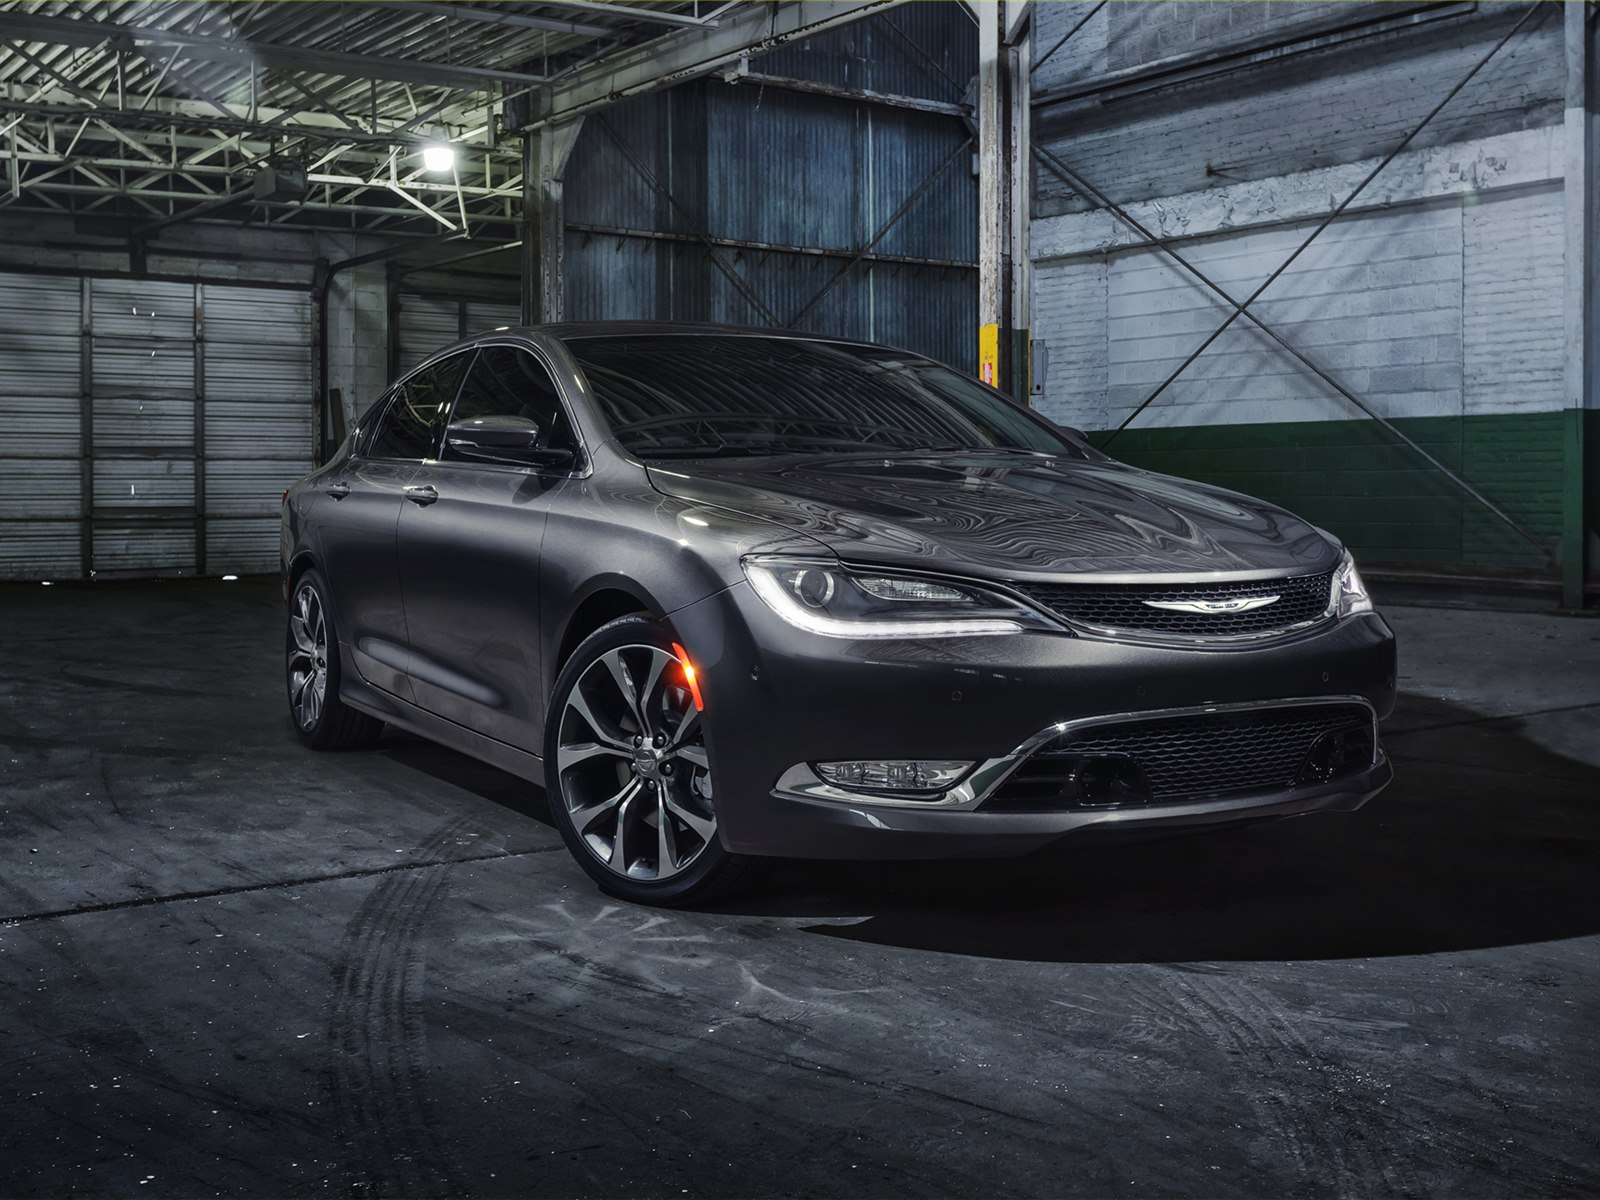 Chrysler Cars 2015 16 Car Background